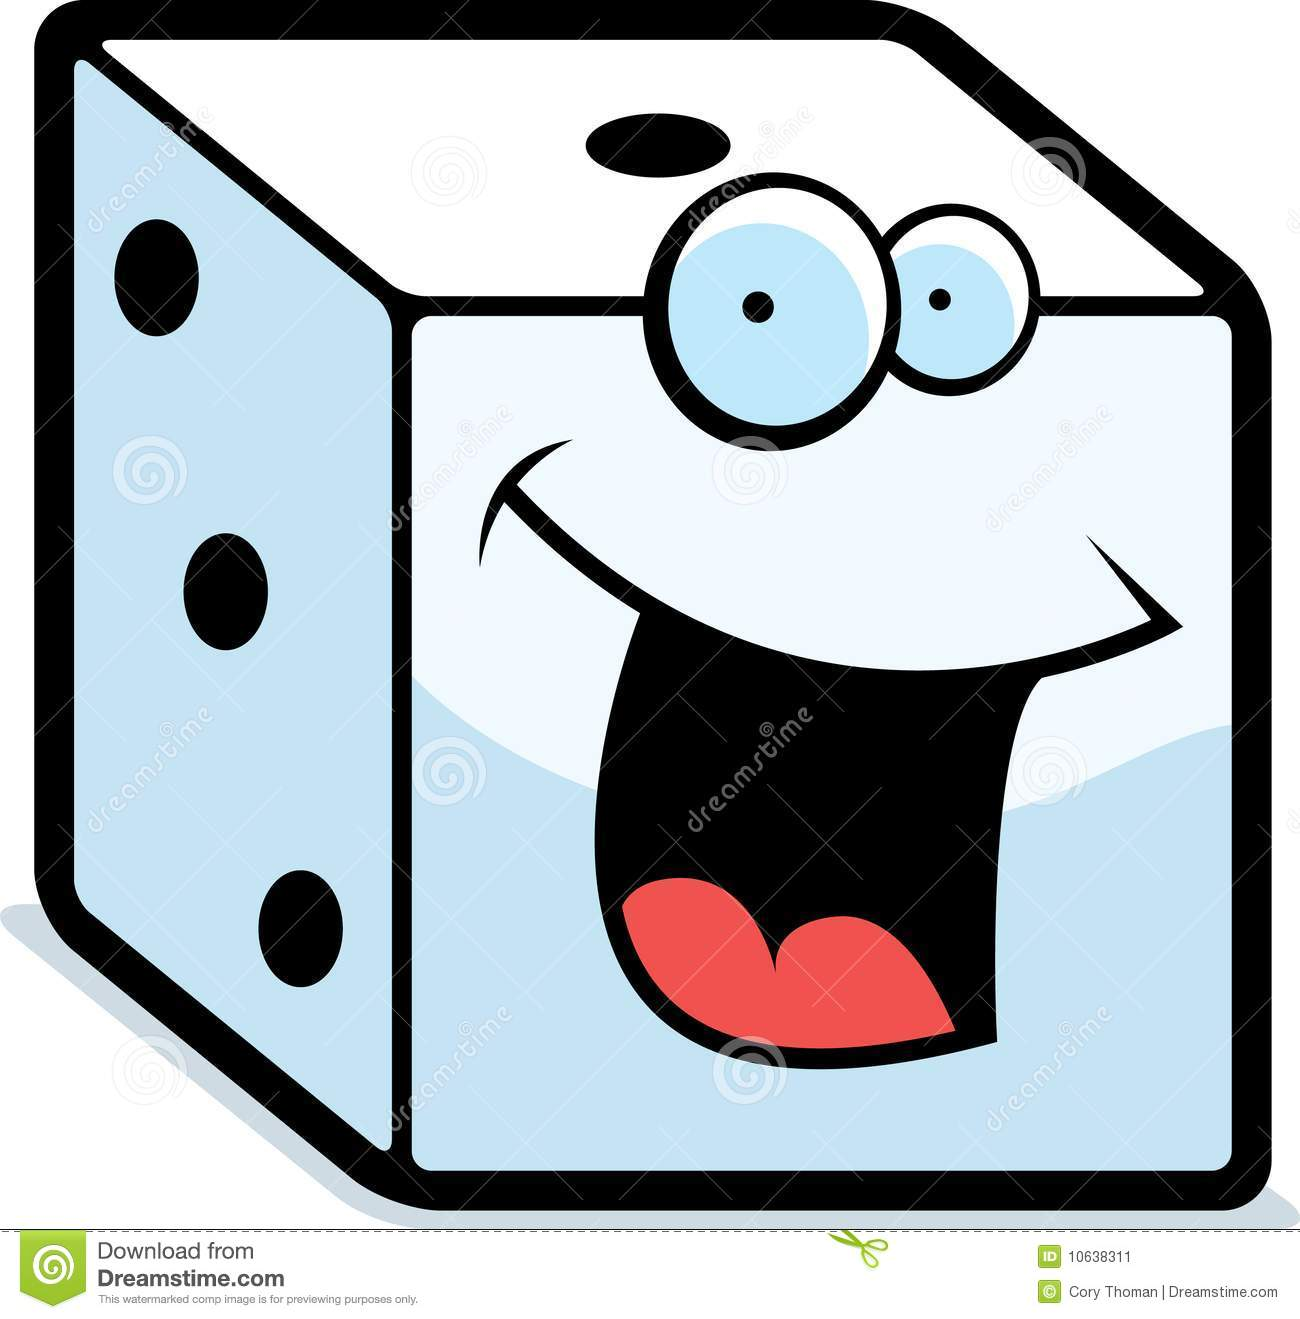 Dice Smiling Stock Image Image 10638311